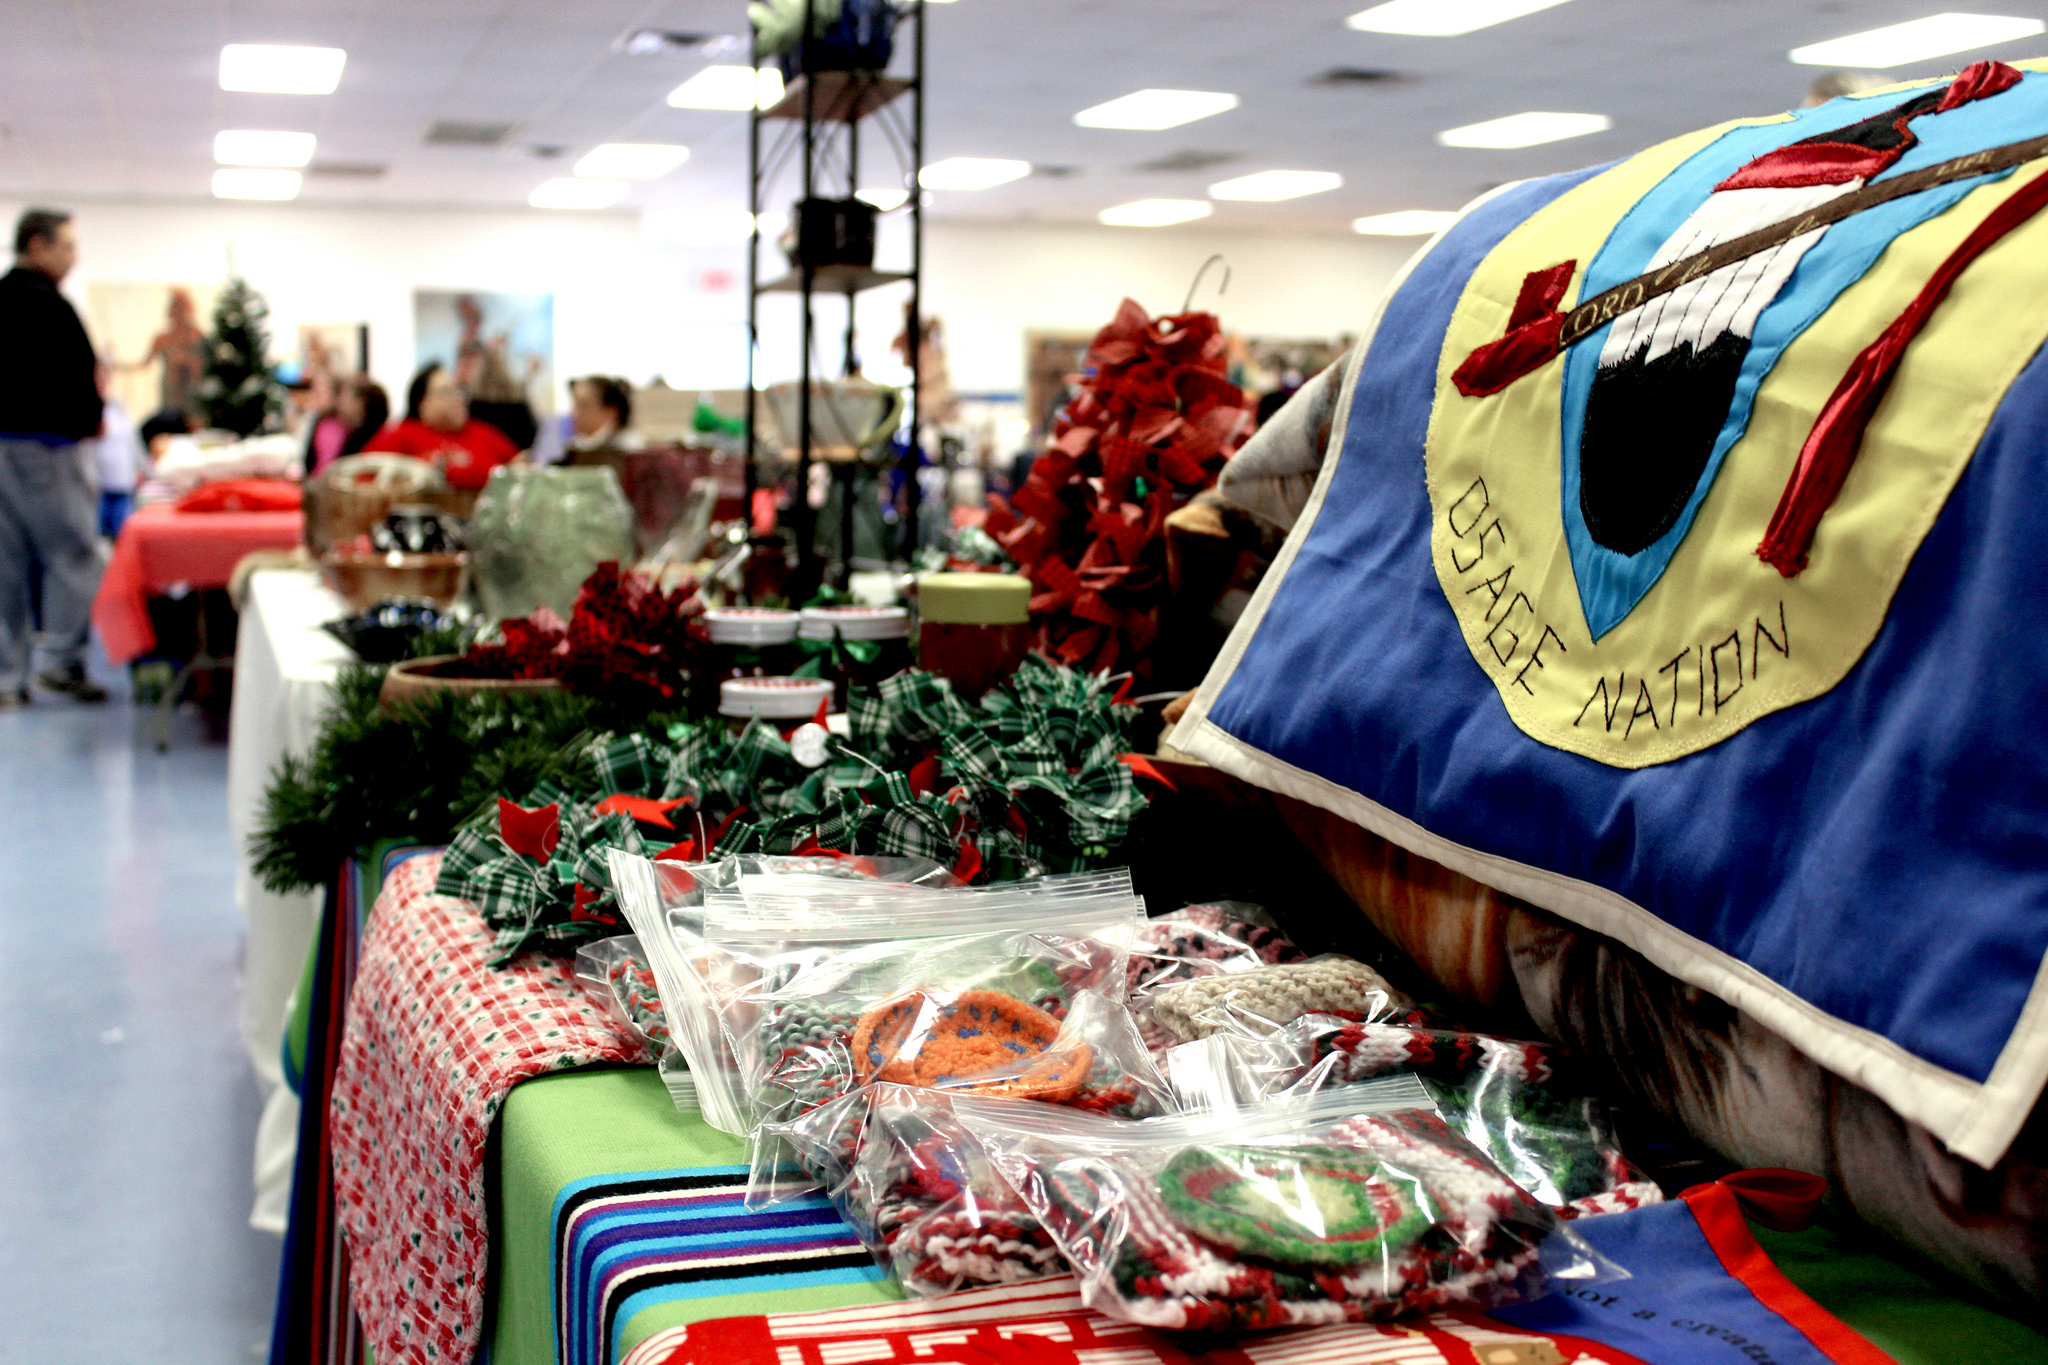 Christmas shopping made easy at the 2nd Annual Christmas Extravaganza